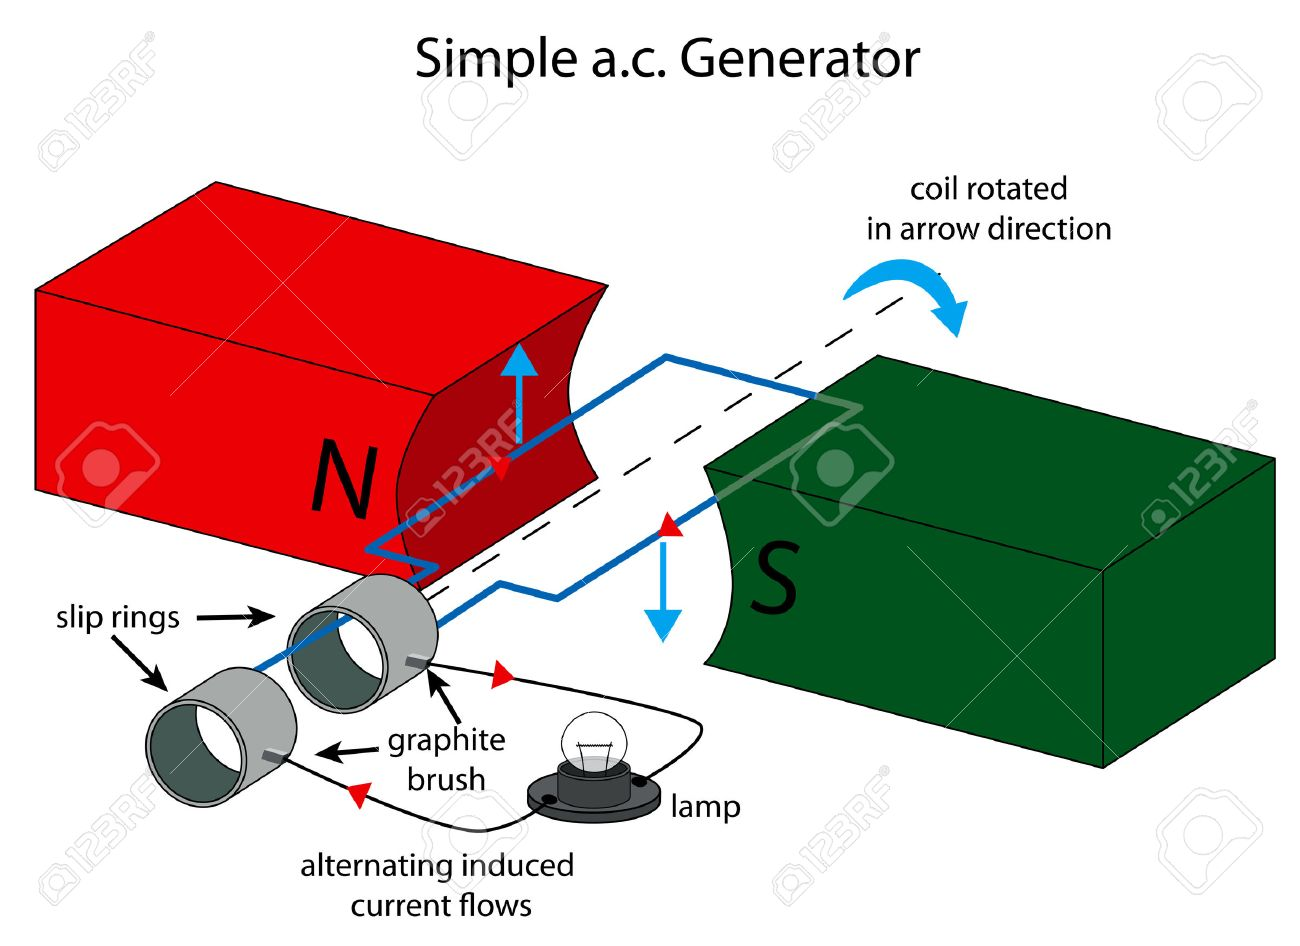 hight resolution of illustration of simple ac generator royalty free cliparts vectors simple diagram image generator